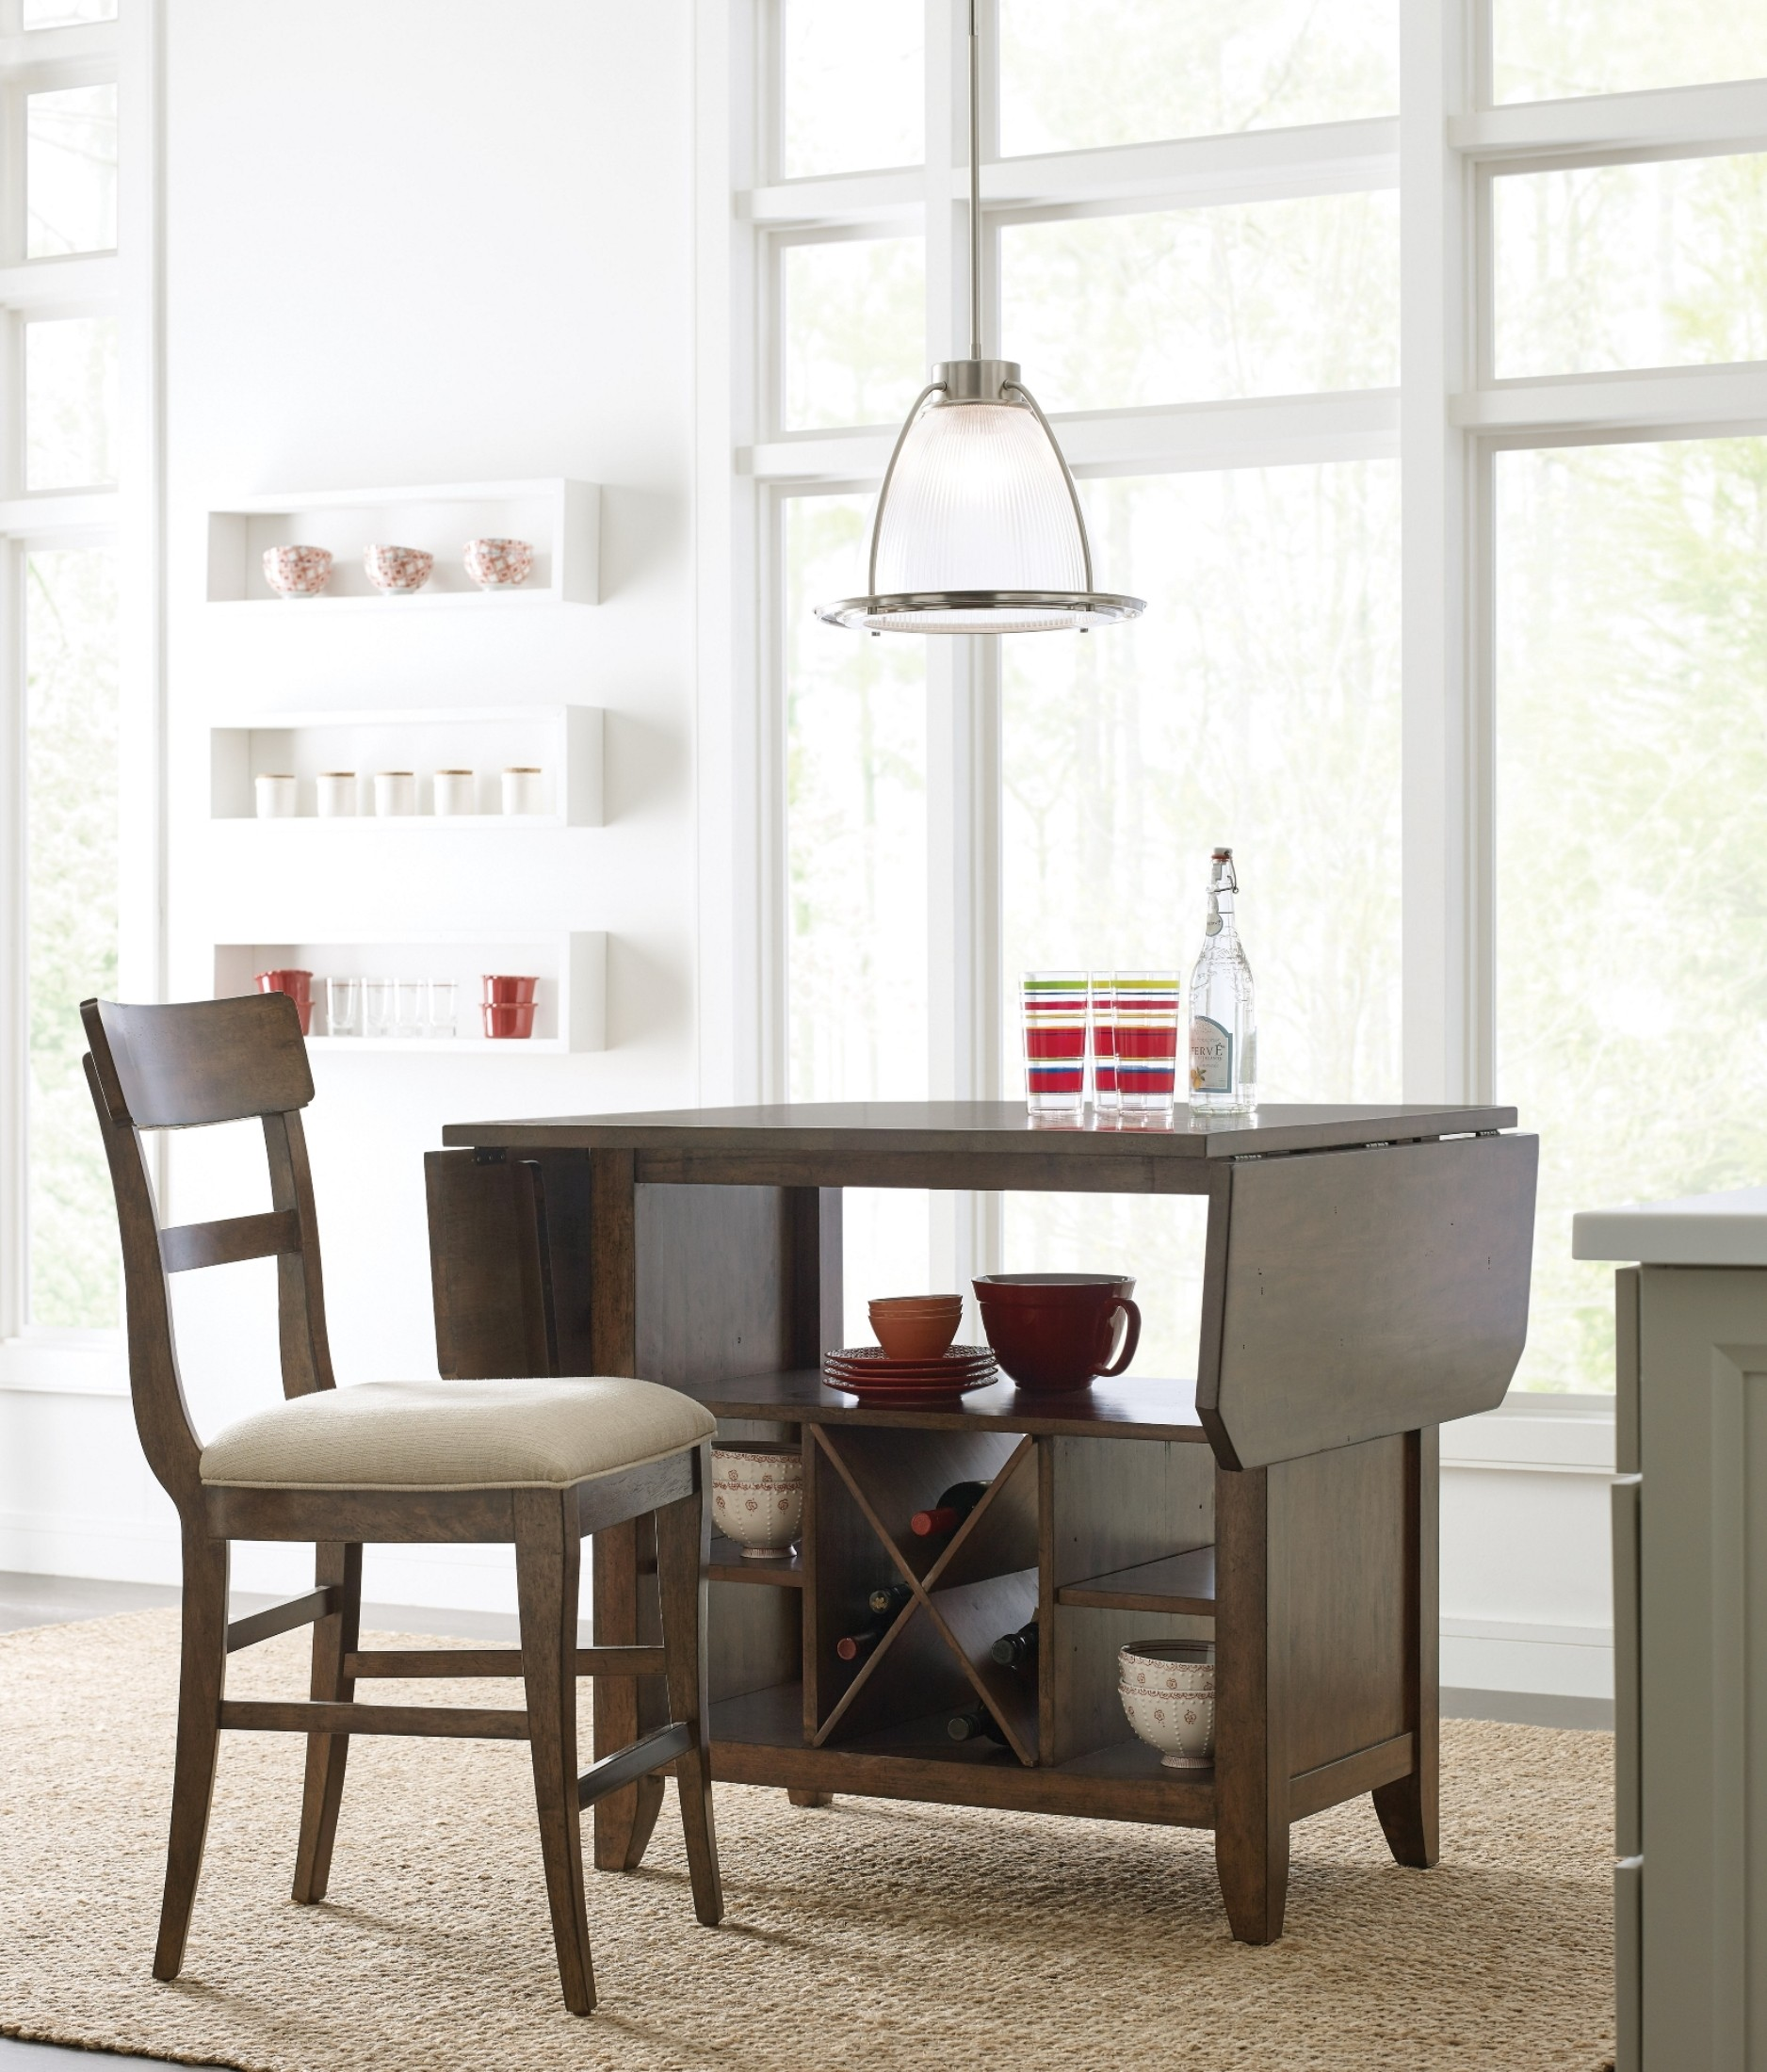 The Nook Maple Kitchen Island From Kincaid Furniture